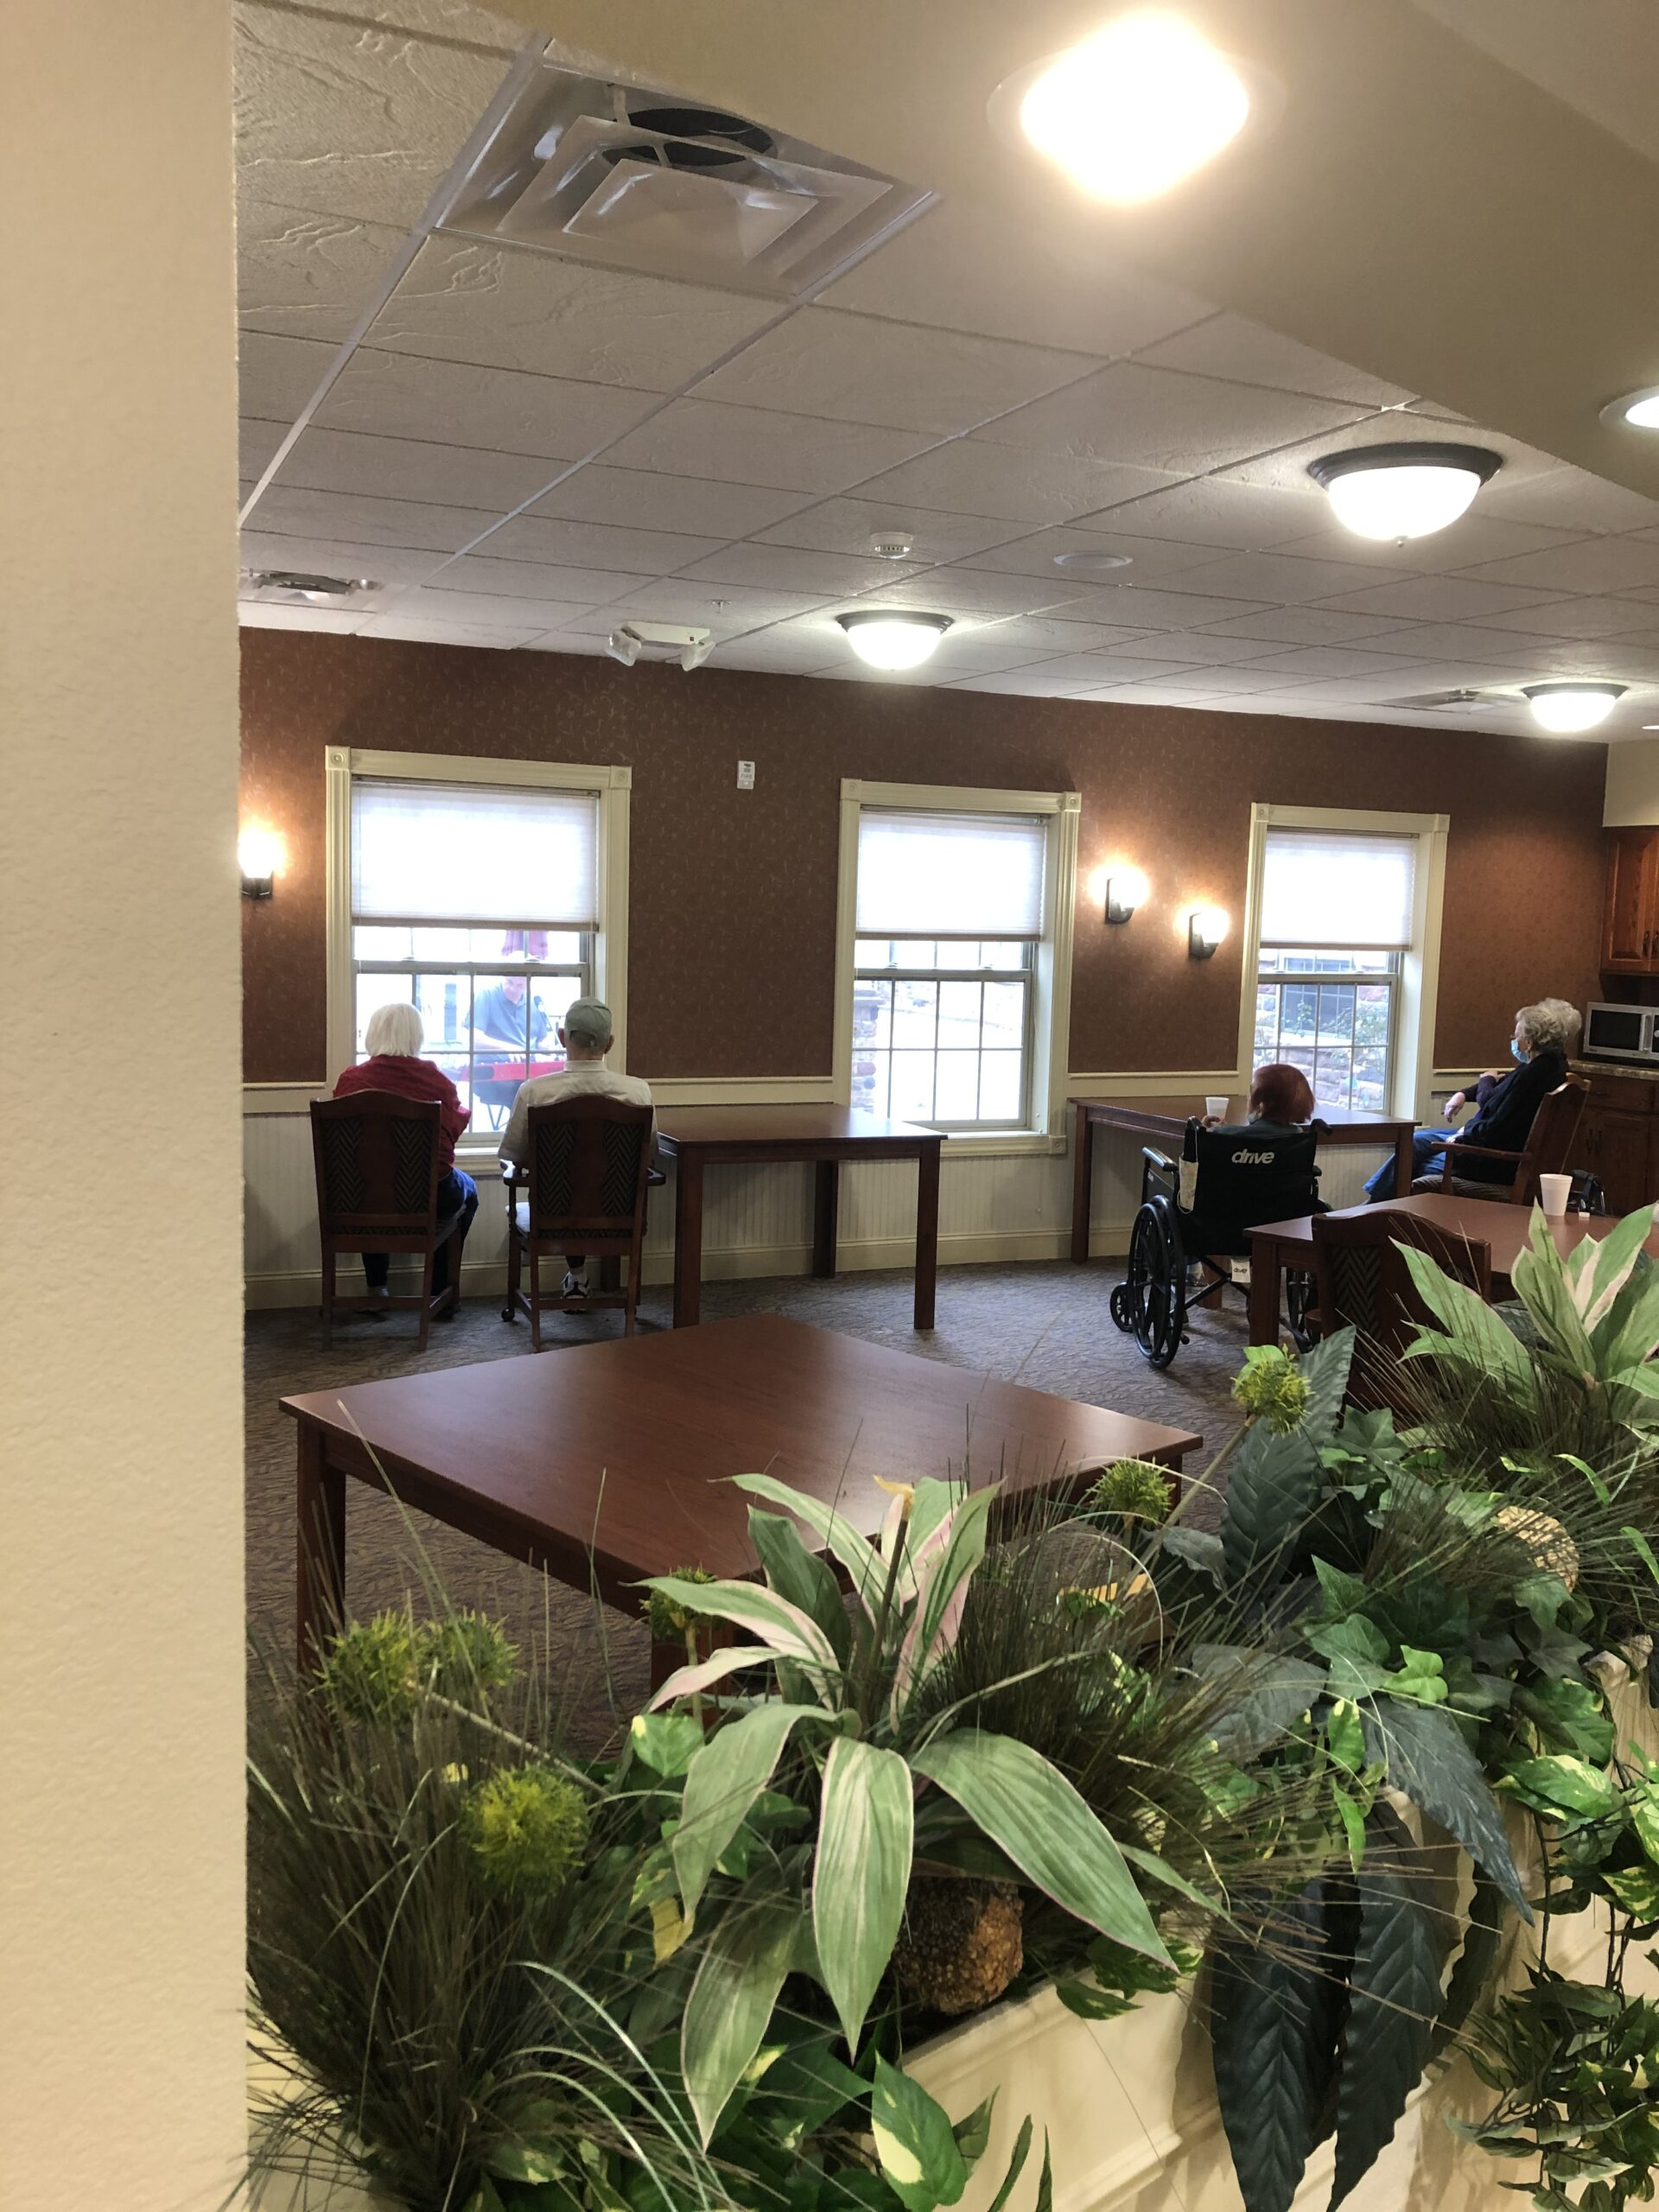 Residents listening to guest musician through the windows.